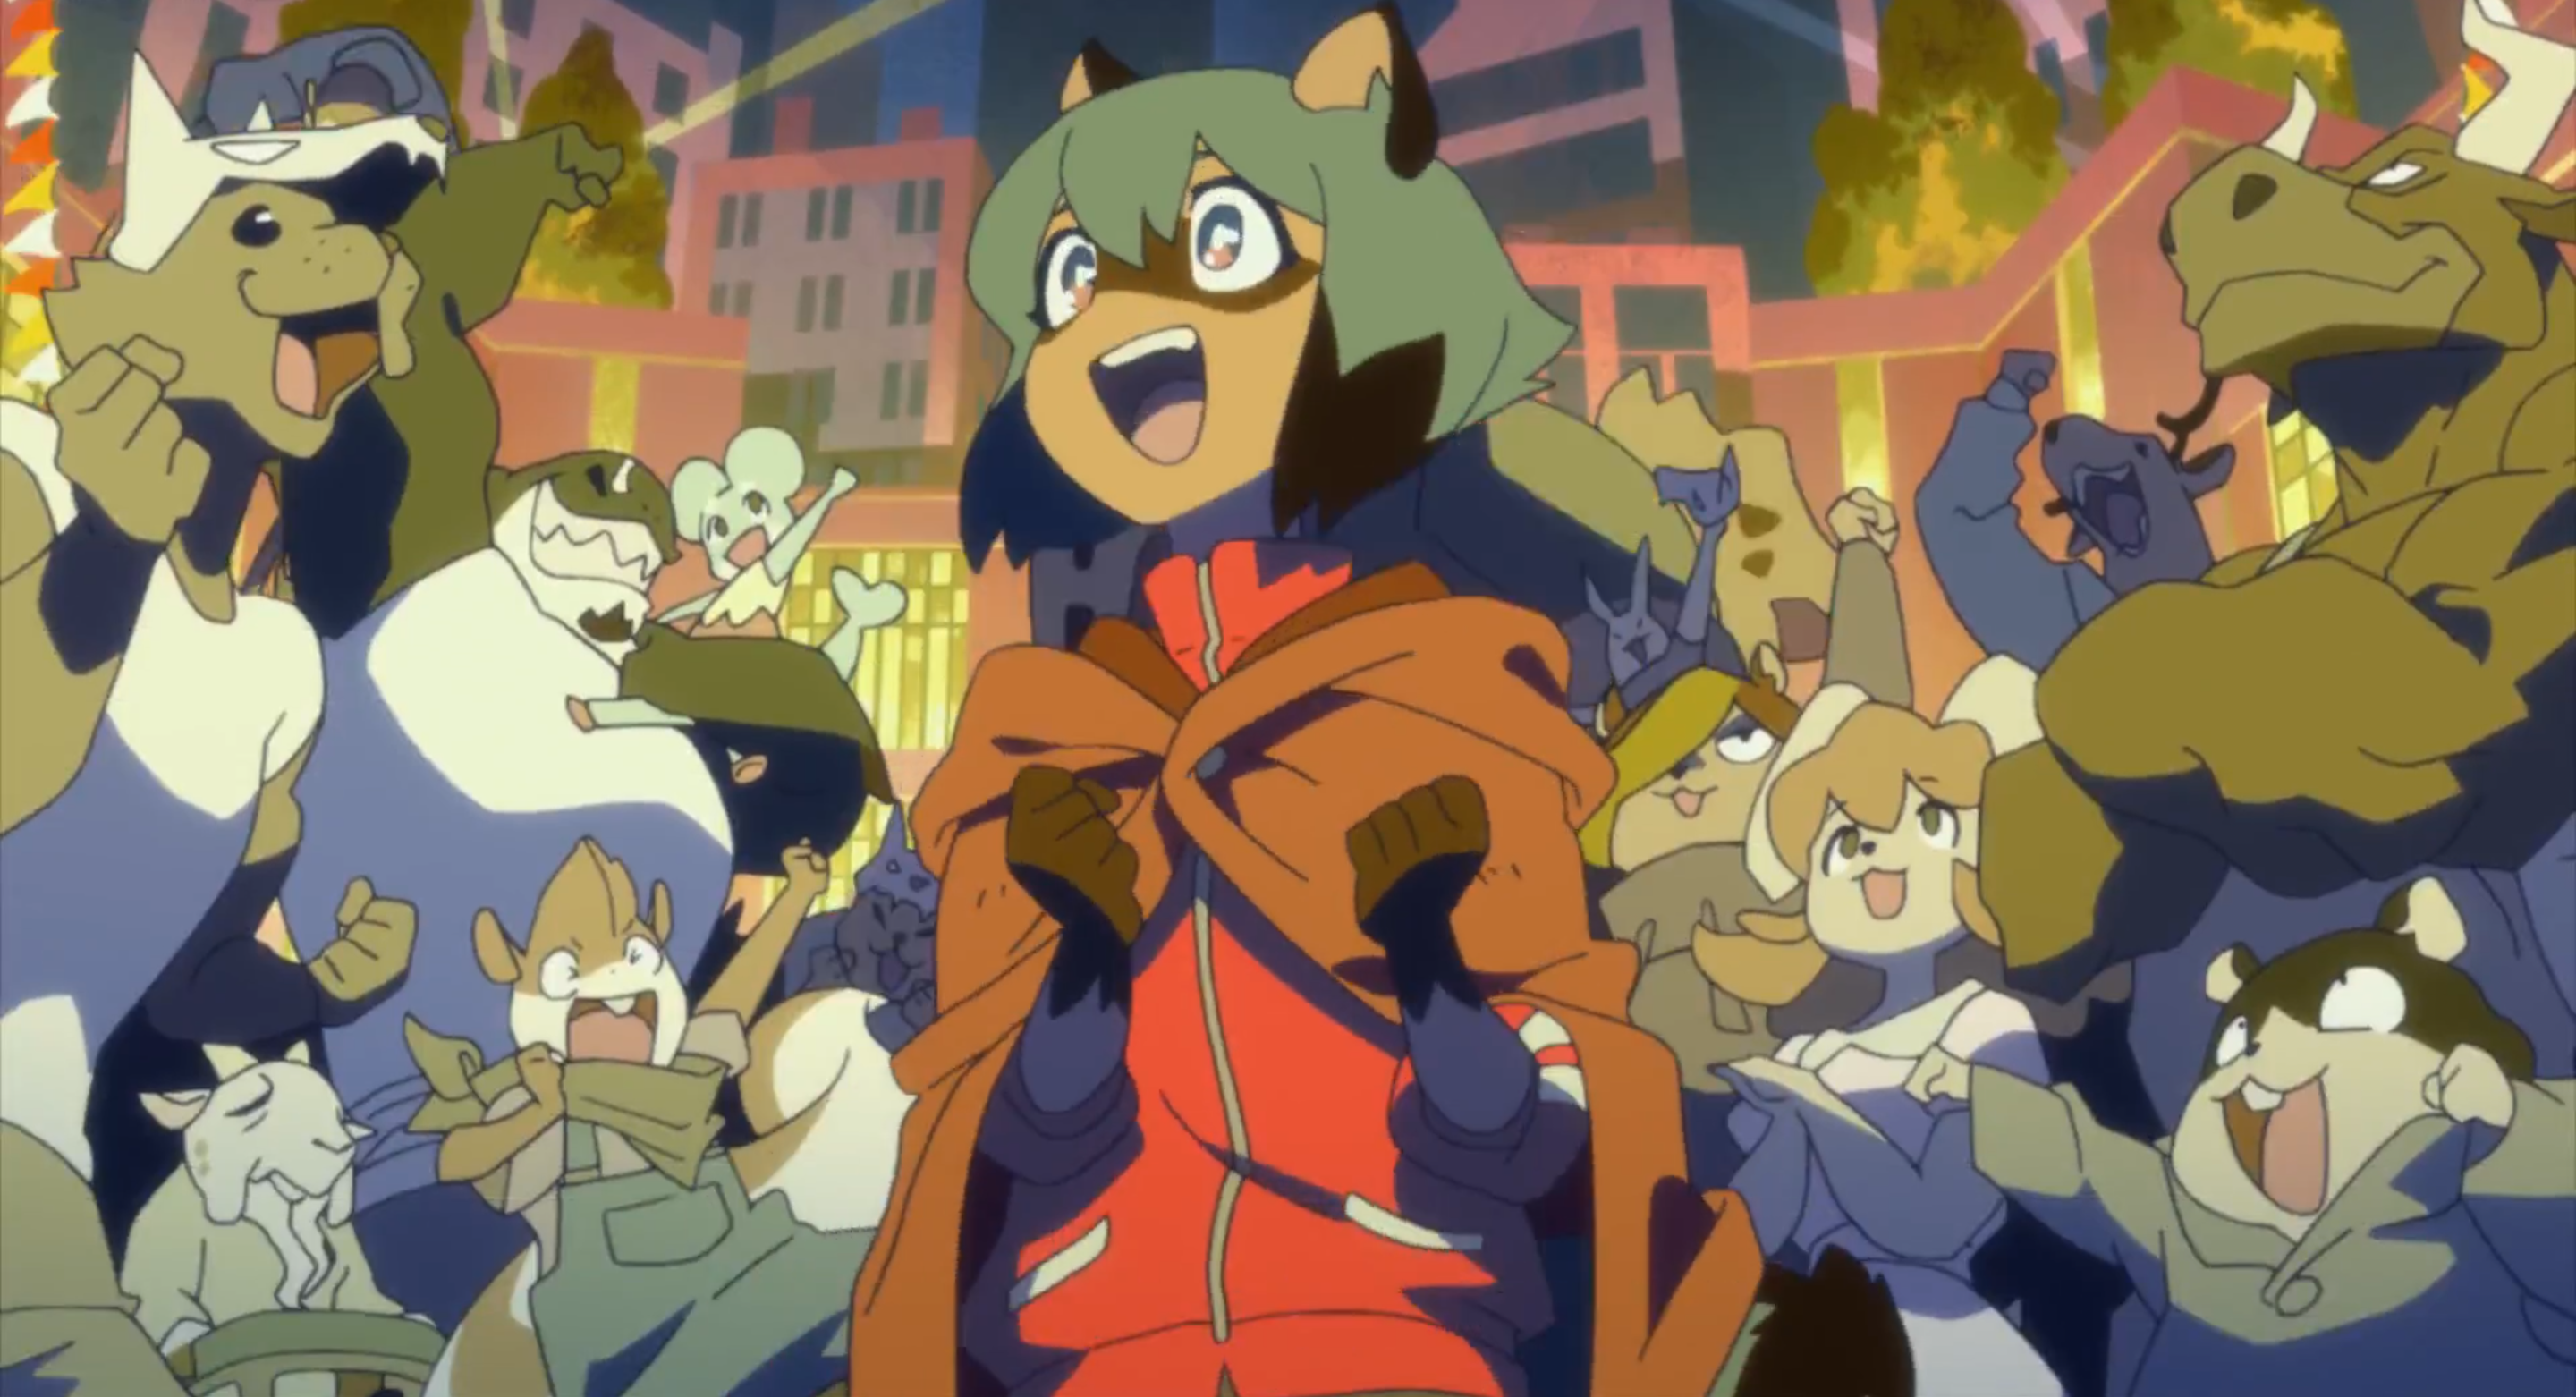 Introspective Furry Anime Are Having A Moment